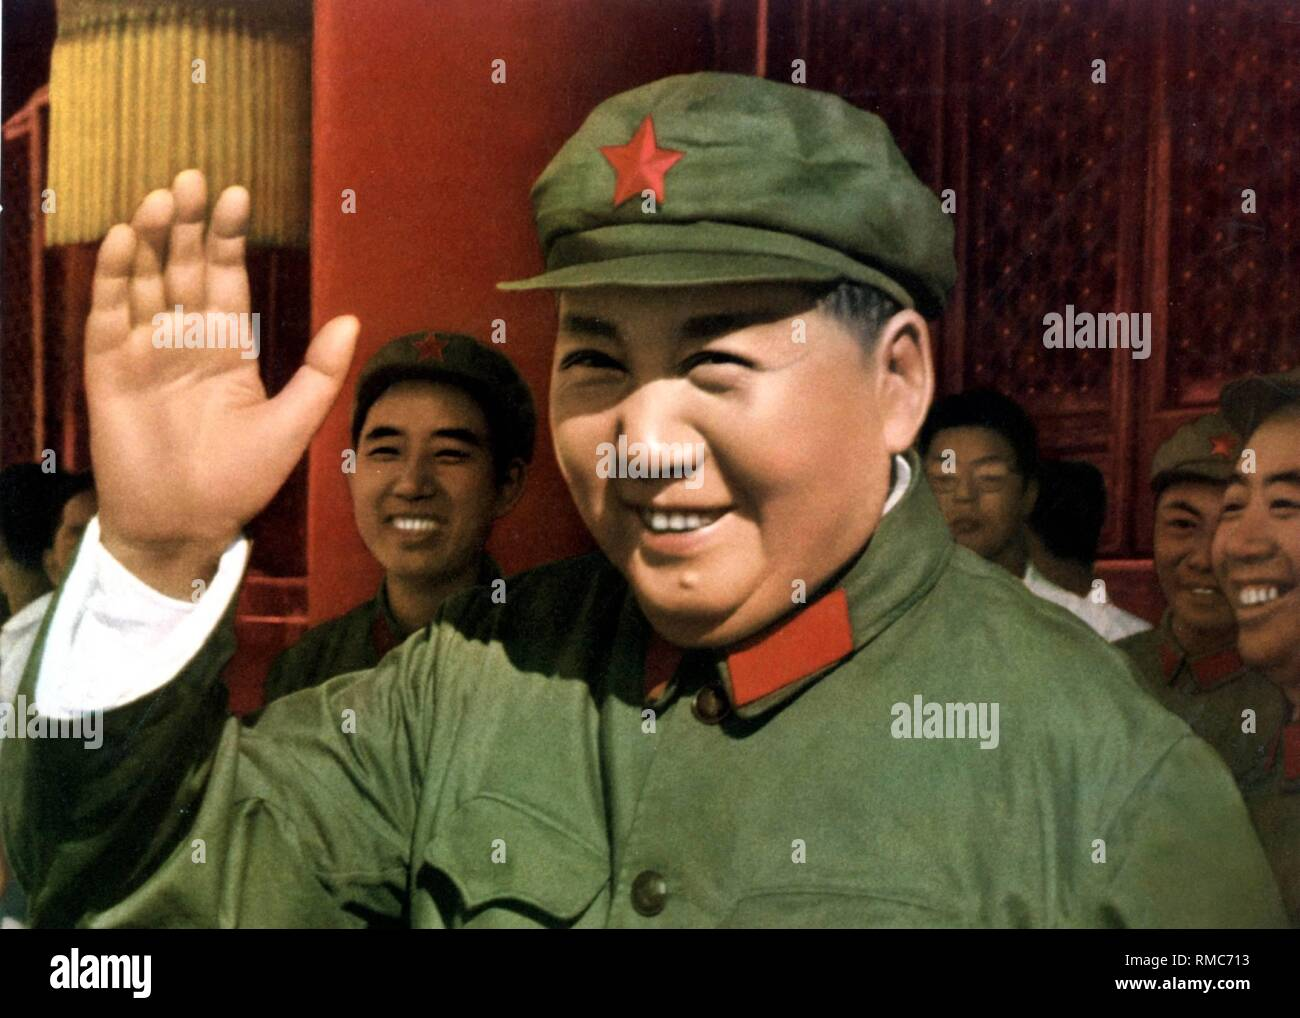 Mao Zedong - (* 26.12.1893 - 09.09.1976), between 1935 - 1976 Chairman of the Chinese Communist Party. Betwee 1954 - 1959 he was President of the People's Republic of China. Chinese propaganda poster of the 'Great Leader' Mao Zedong from 1966, undated. - Stock Image